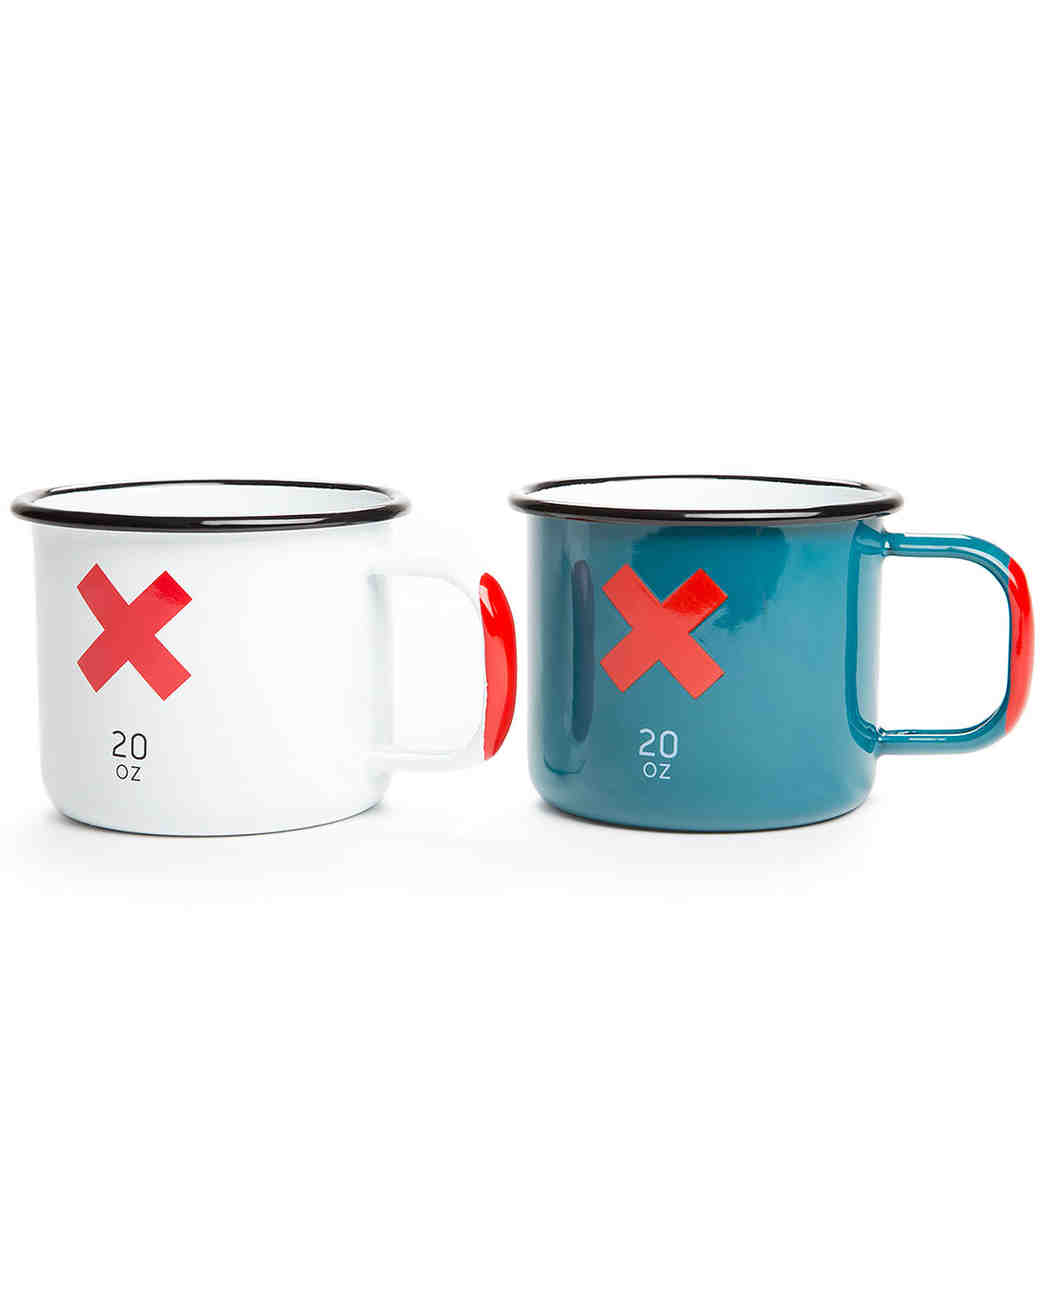 valentines-day-gifts-for-guys-best-made-enamel-mugs-0216.jpg